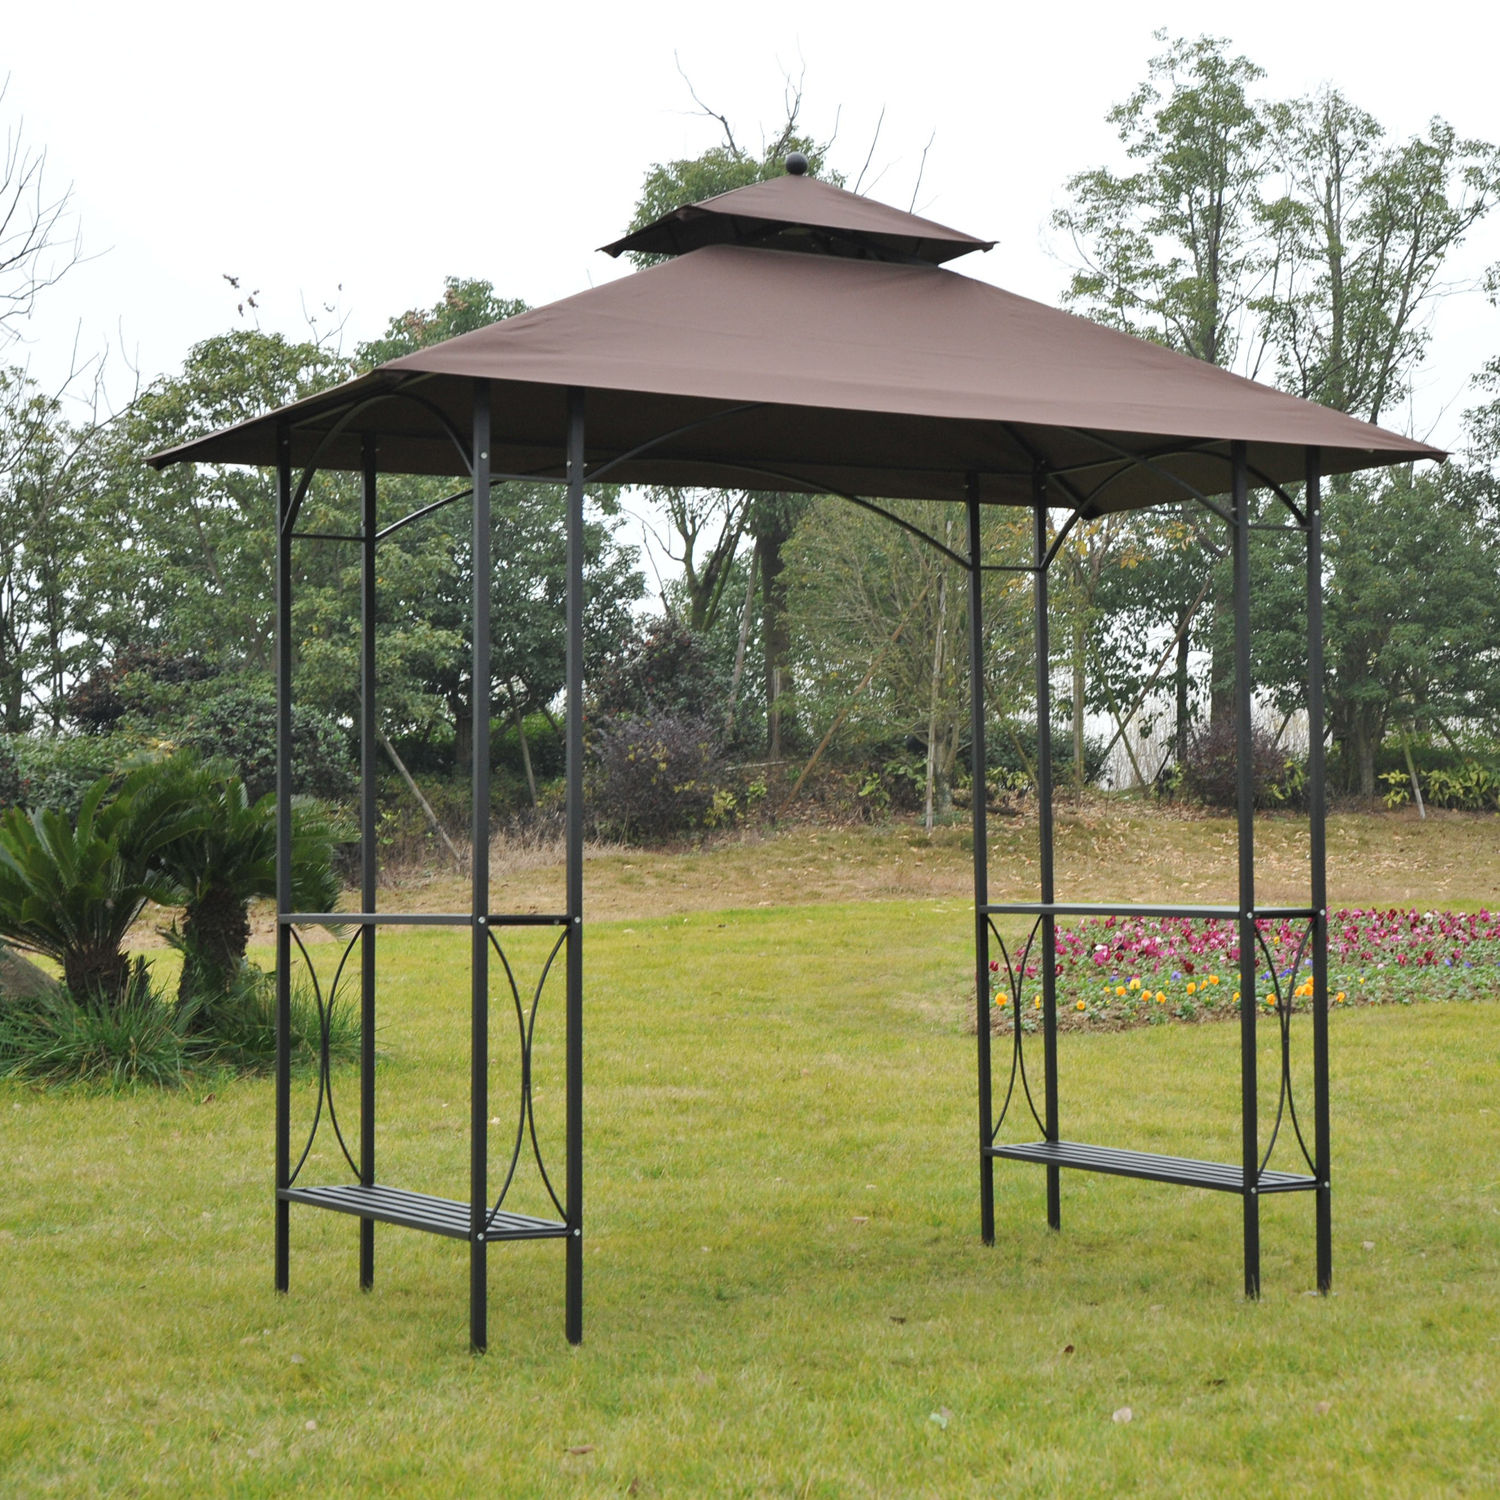 creative ideas on best gazebo french awning outdoor grill bbq pinterest canopy about